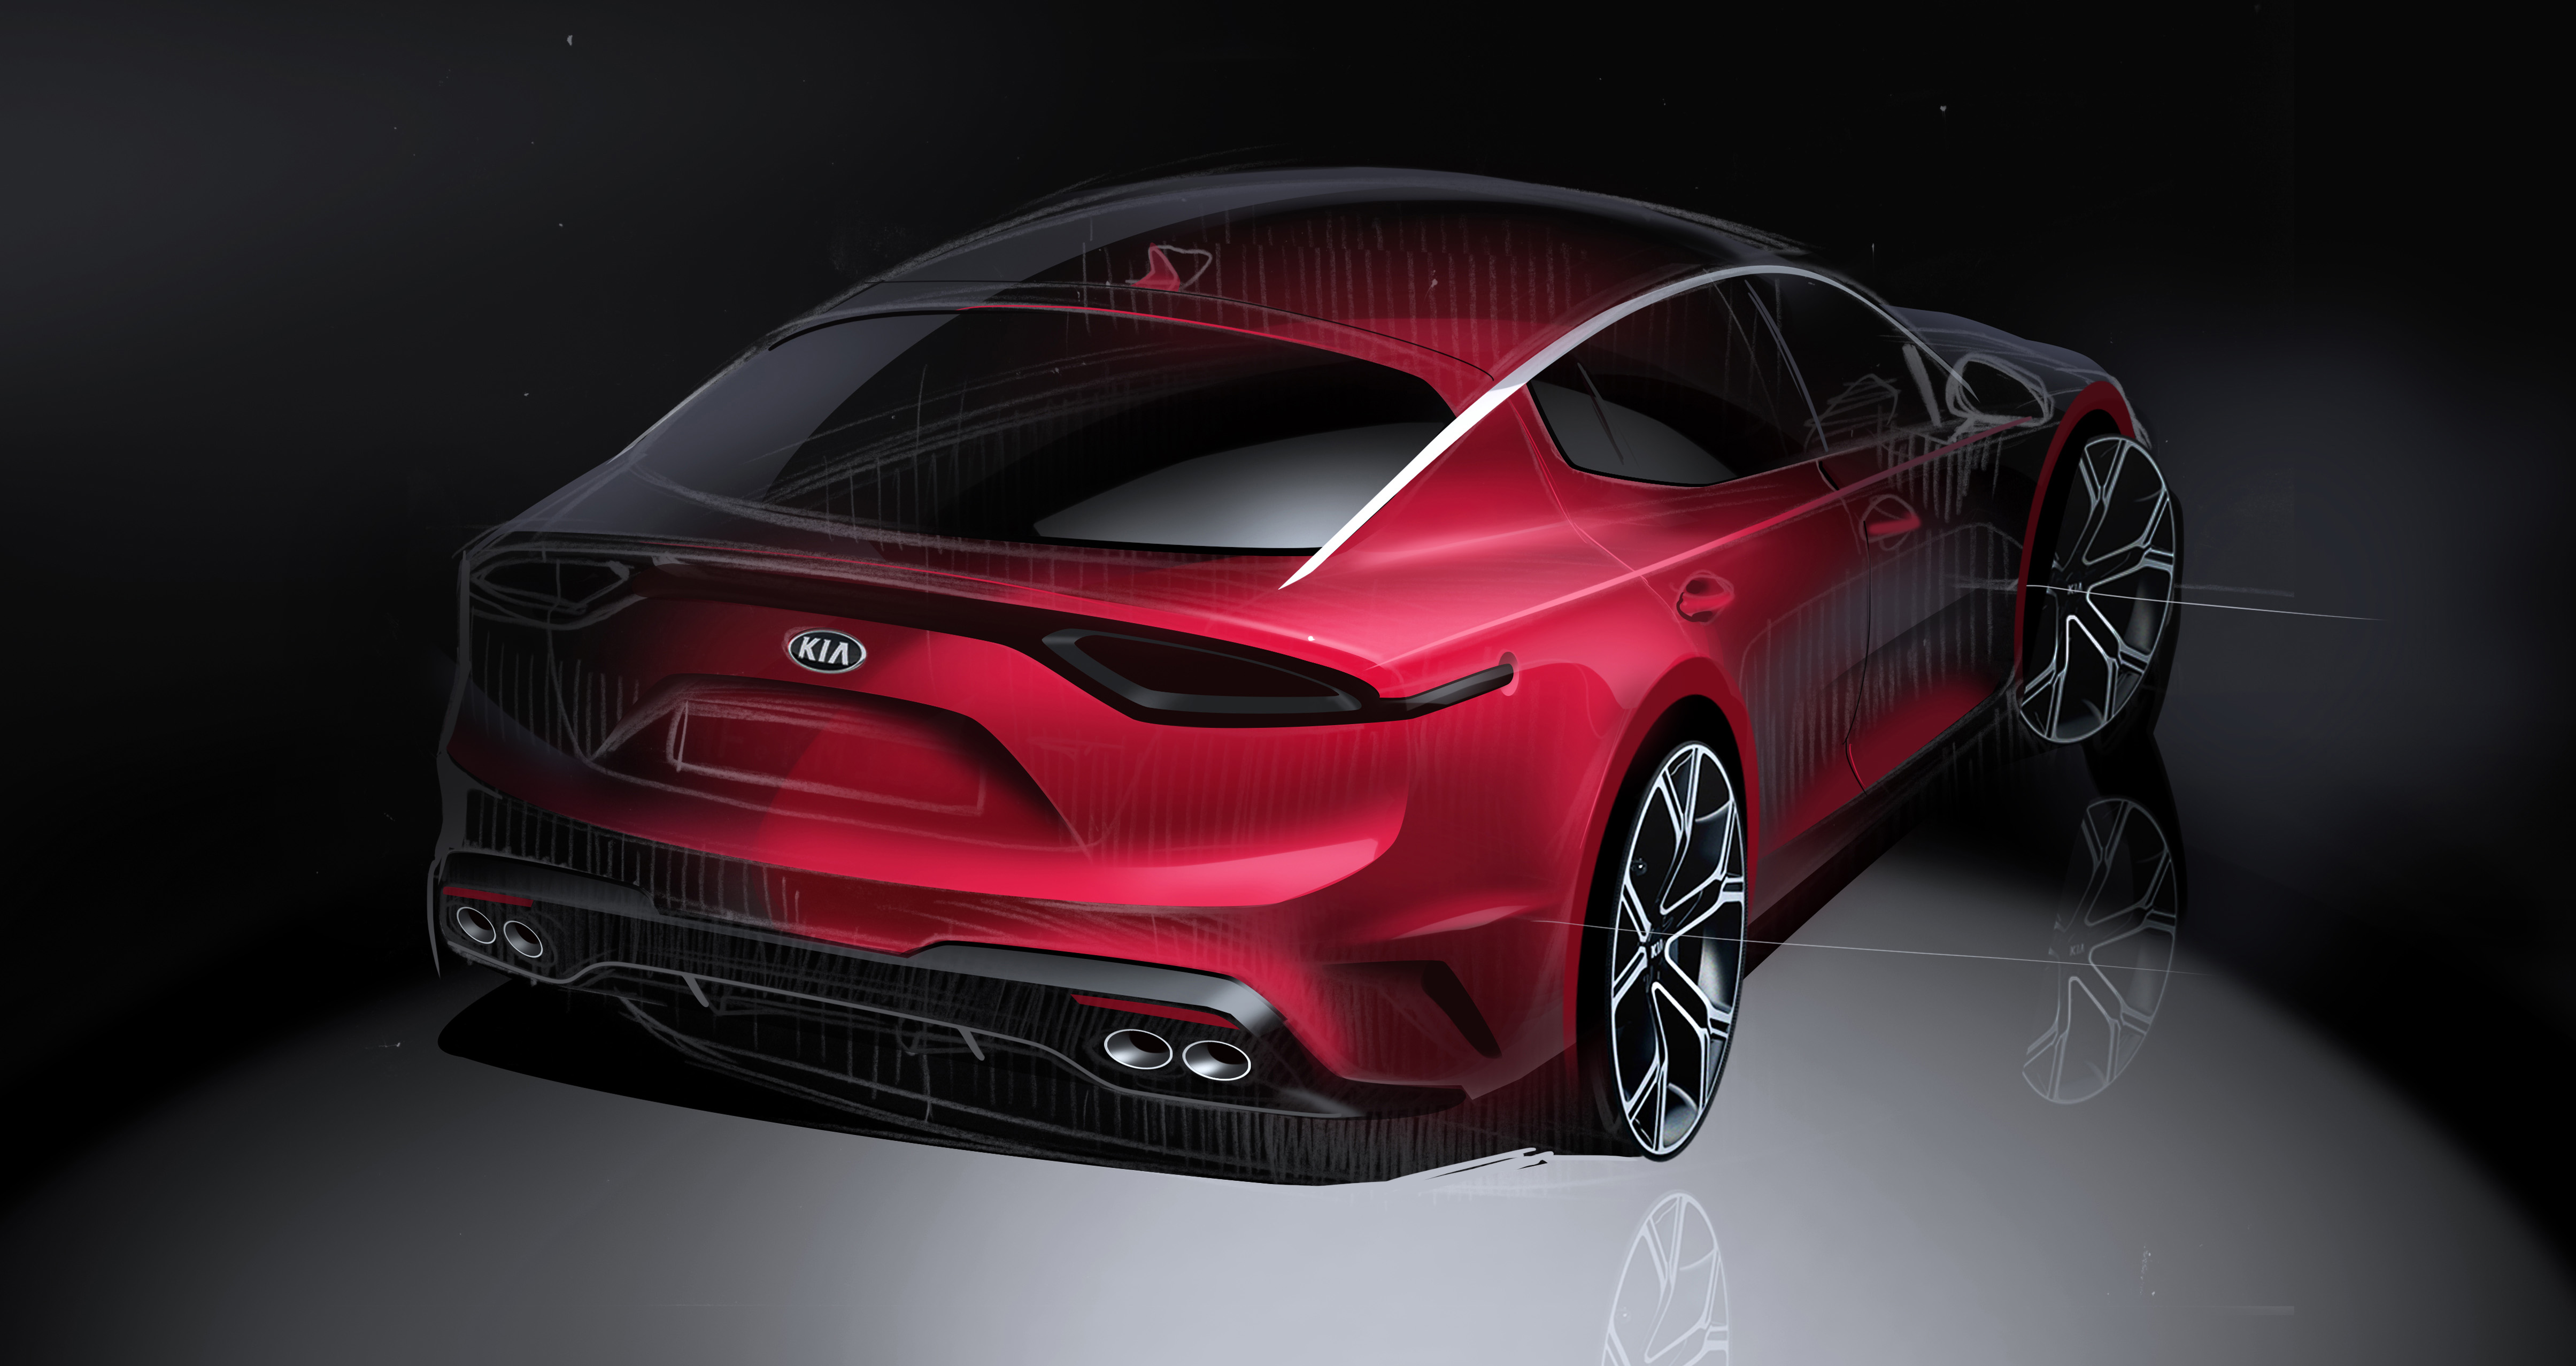 Kia Hasn't Decided Yet if Stinger Will Have a Second Gen